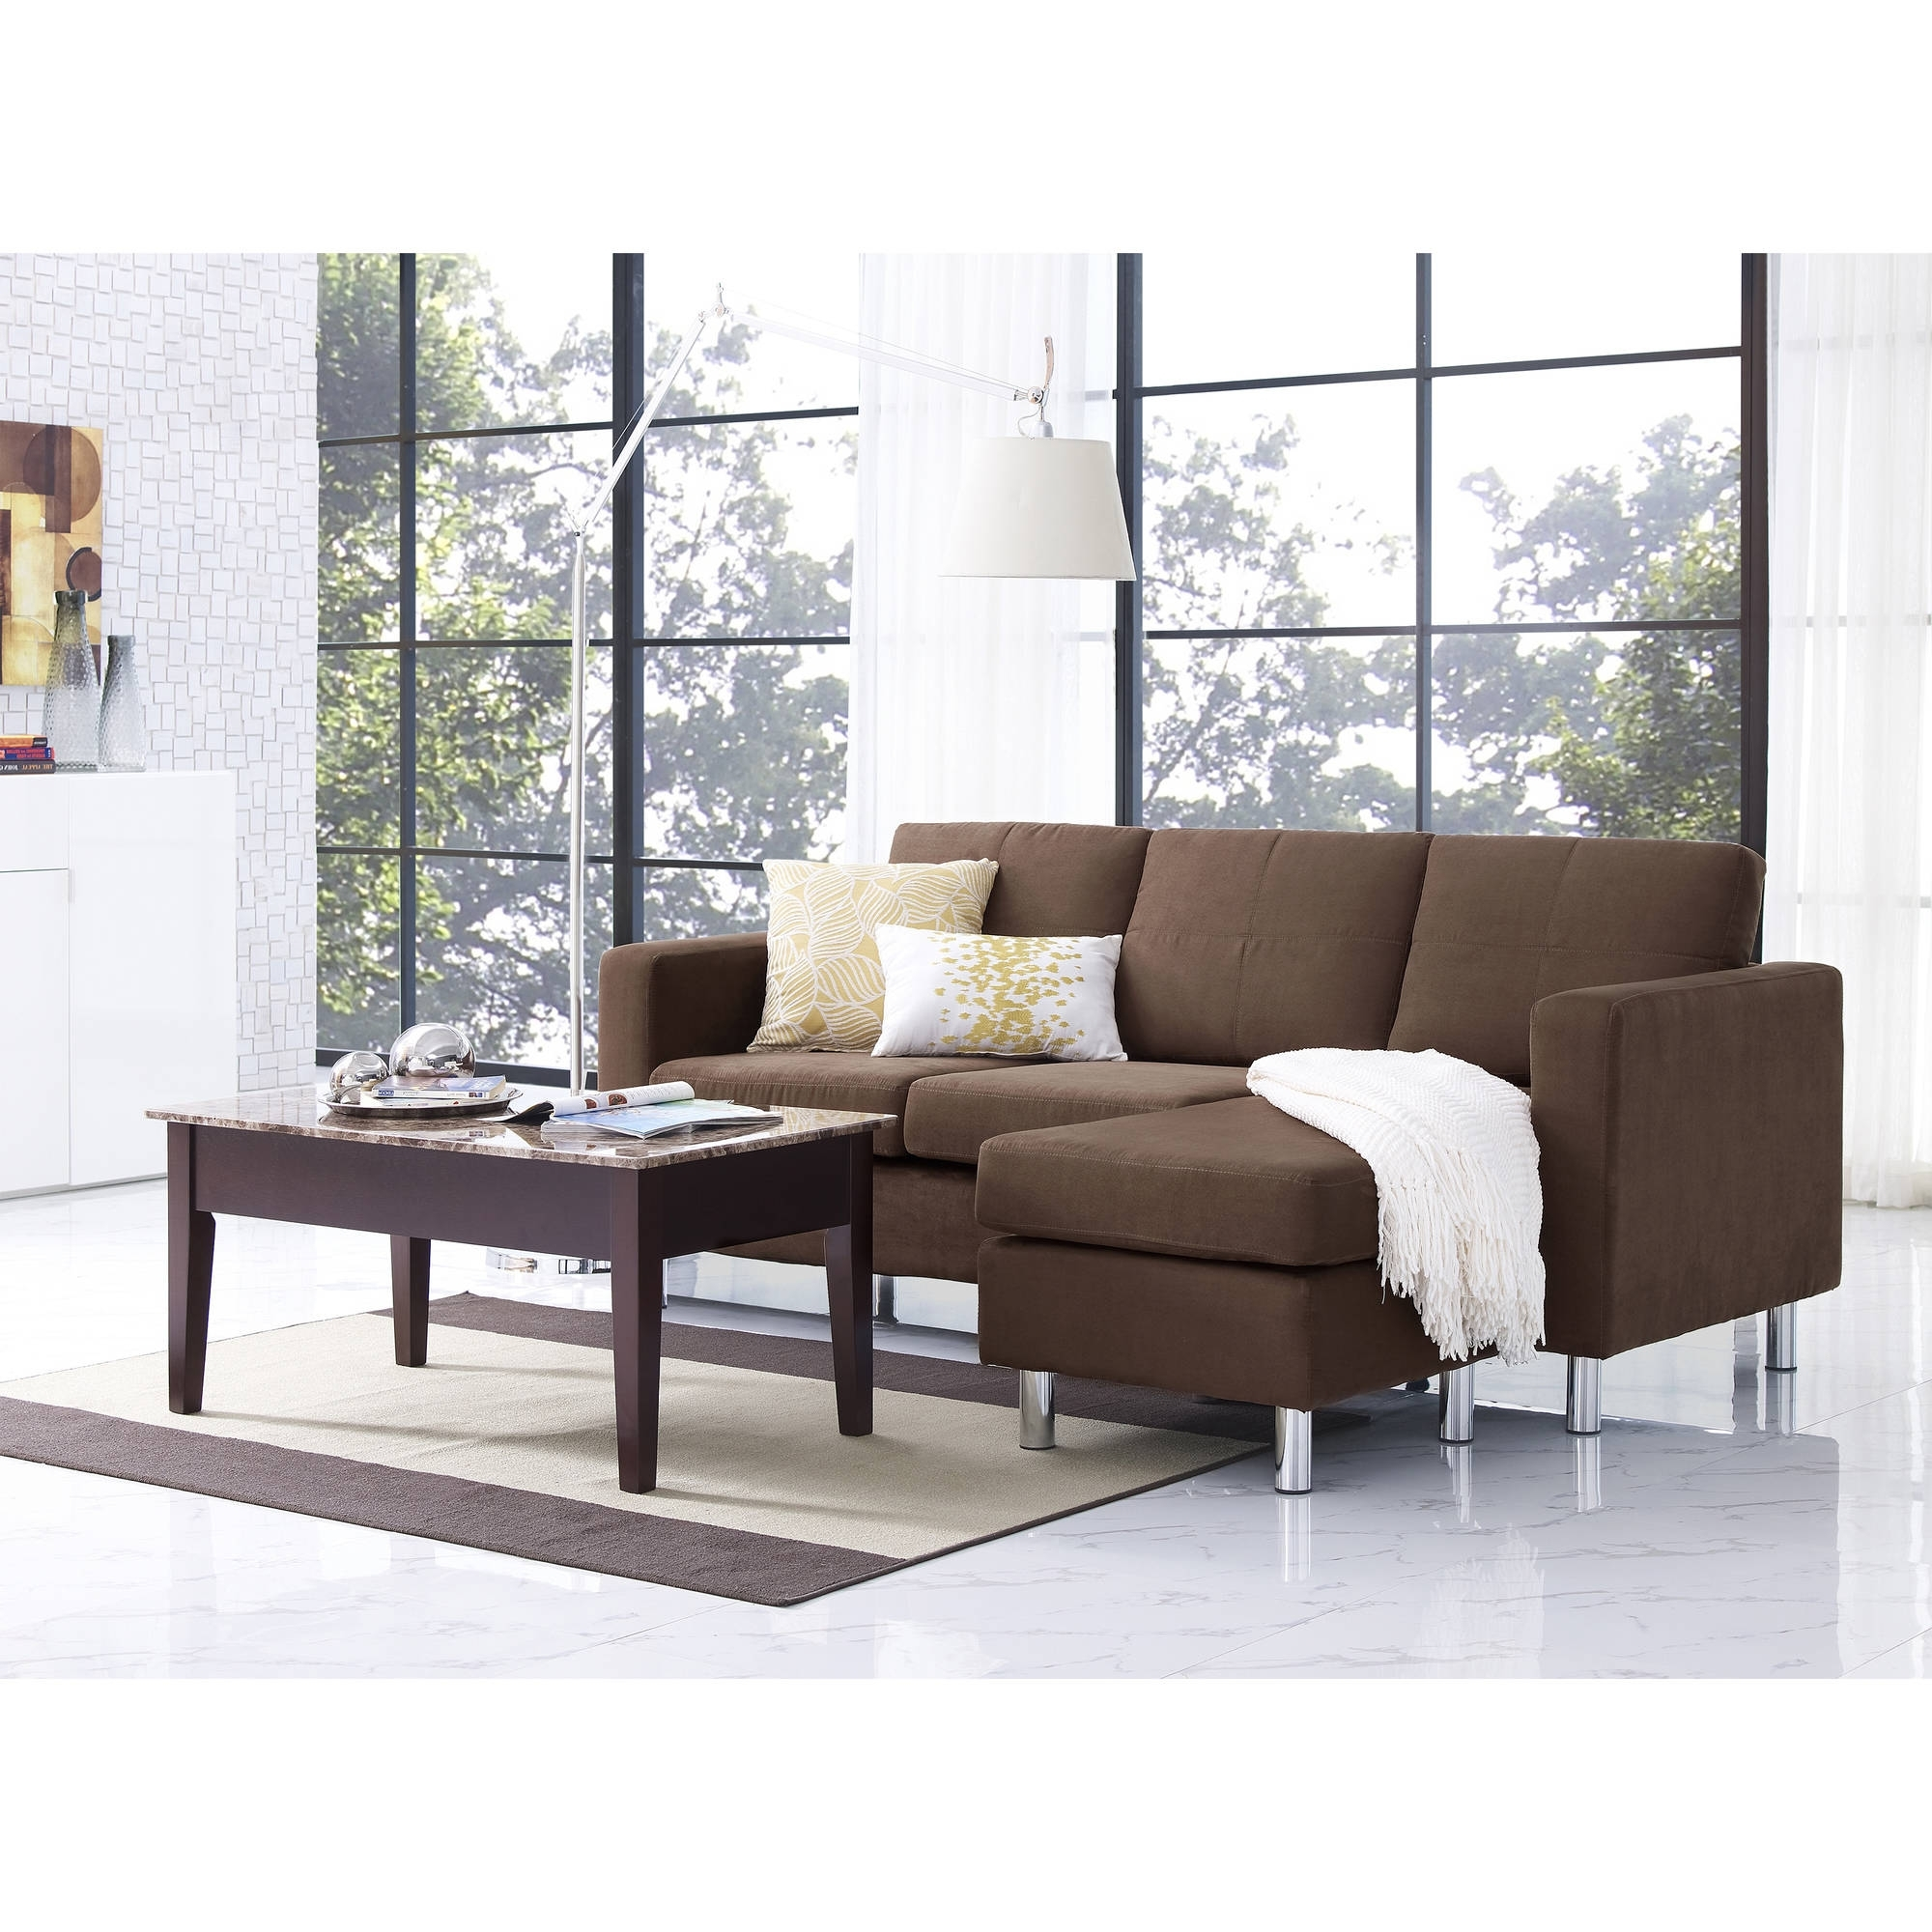 Sofa : Cheap Leather Corner Sofas Leather Couches For Sale Sleeper Inside Most Recently Released Small Sectional Sofas For Small Spaces (View 18 of 20)